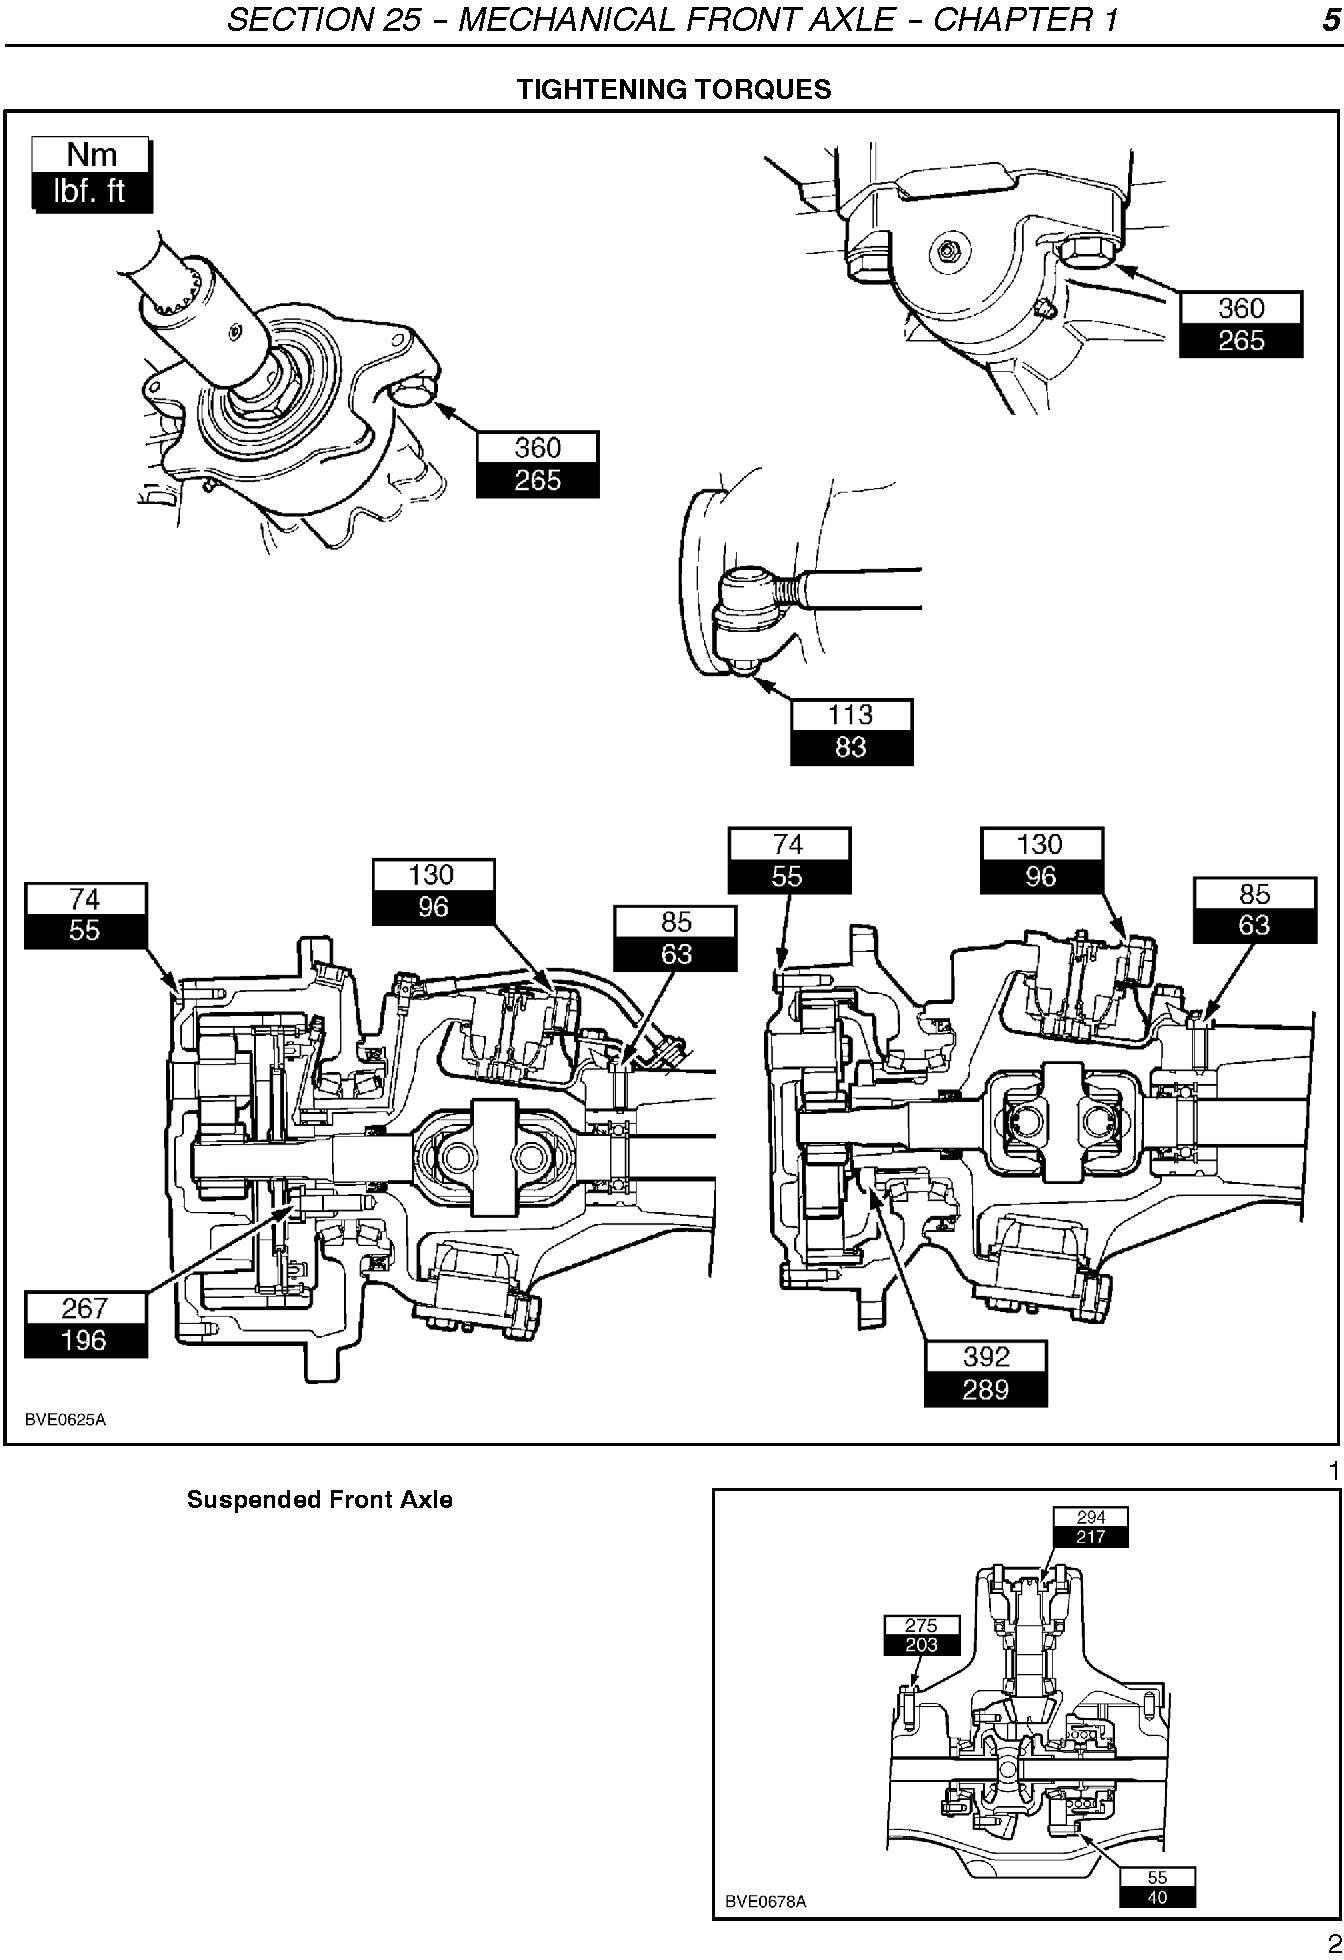 New Holland TS100A, TS110A, TS115A, TS125A, TS130A, TS135A, T6010, T6020, T6030,T6050 Service Manual - 3